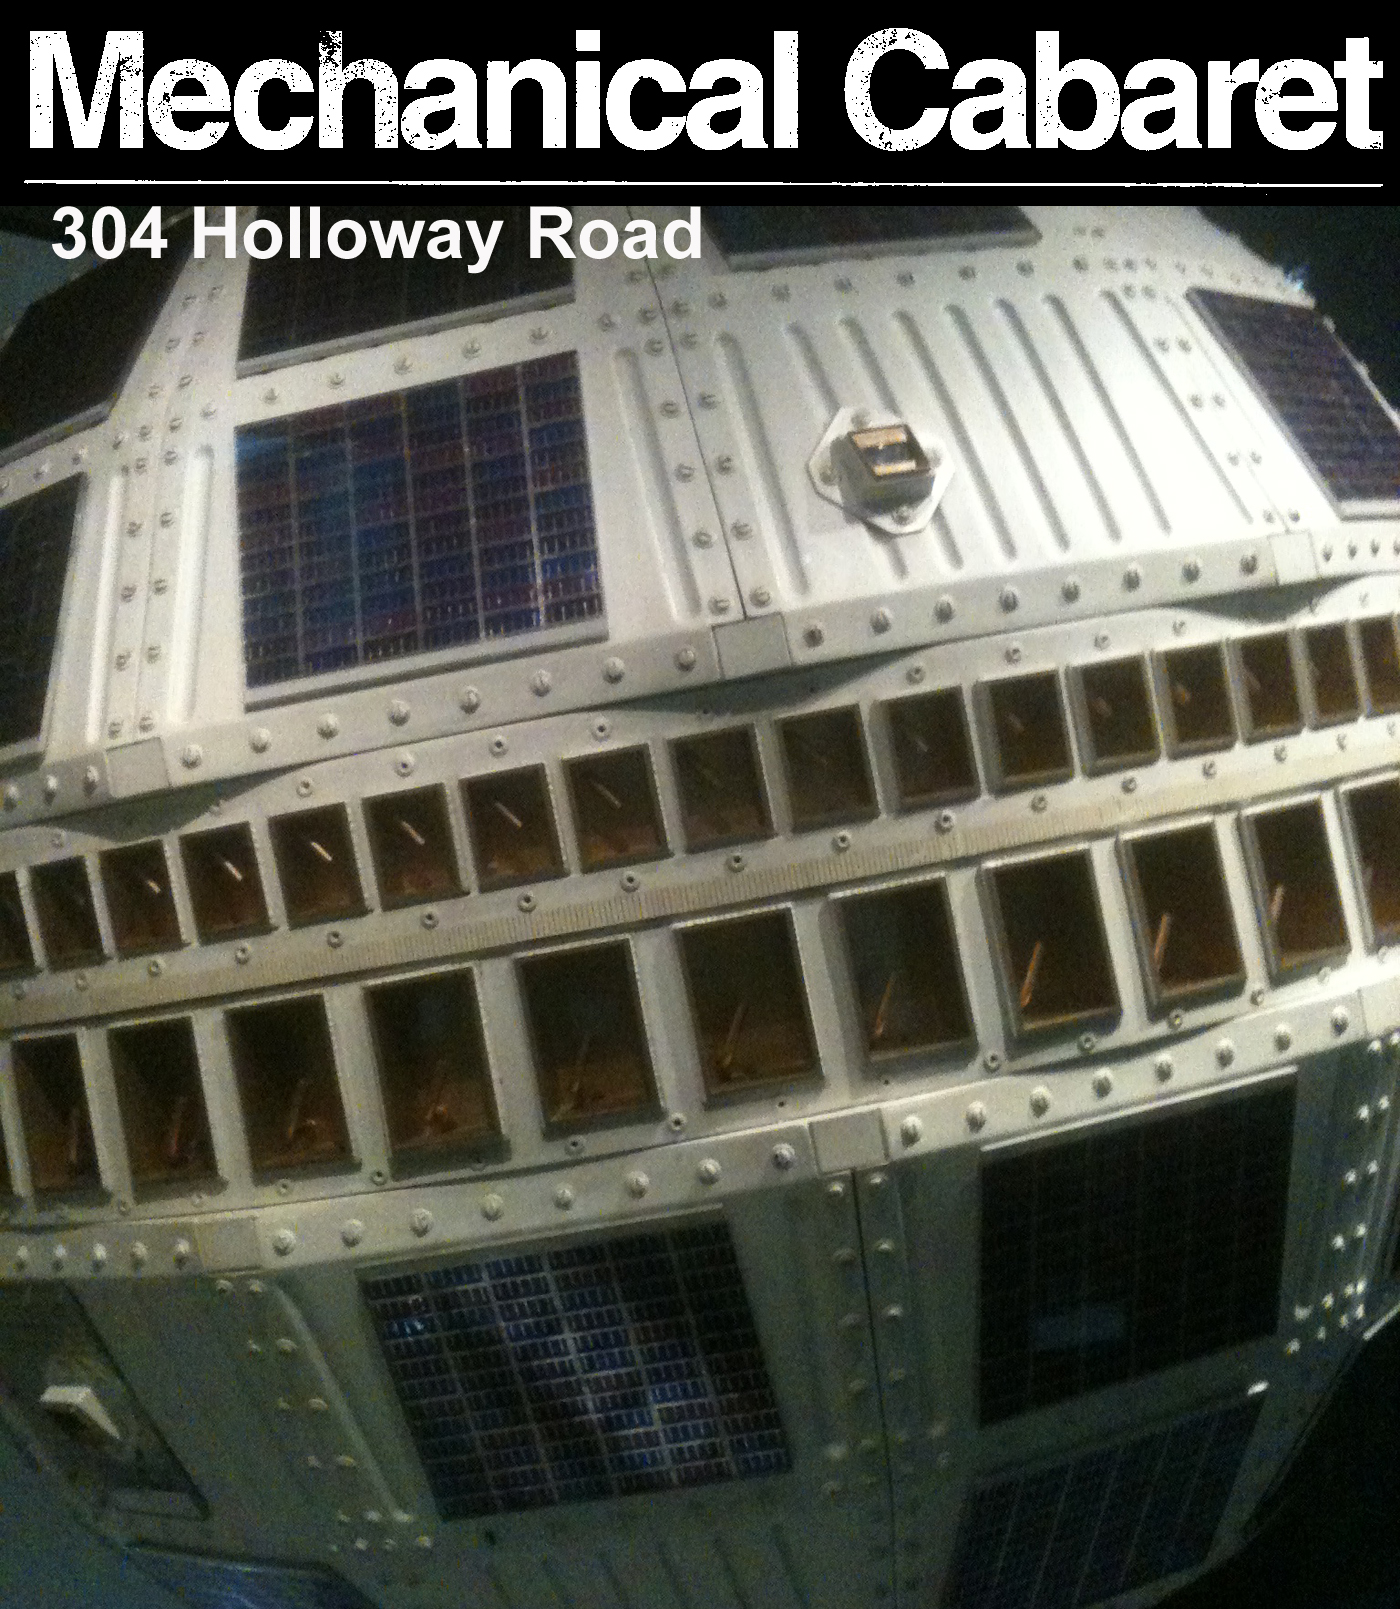 Mechanical Cabaret 304 Holloway Road single